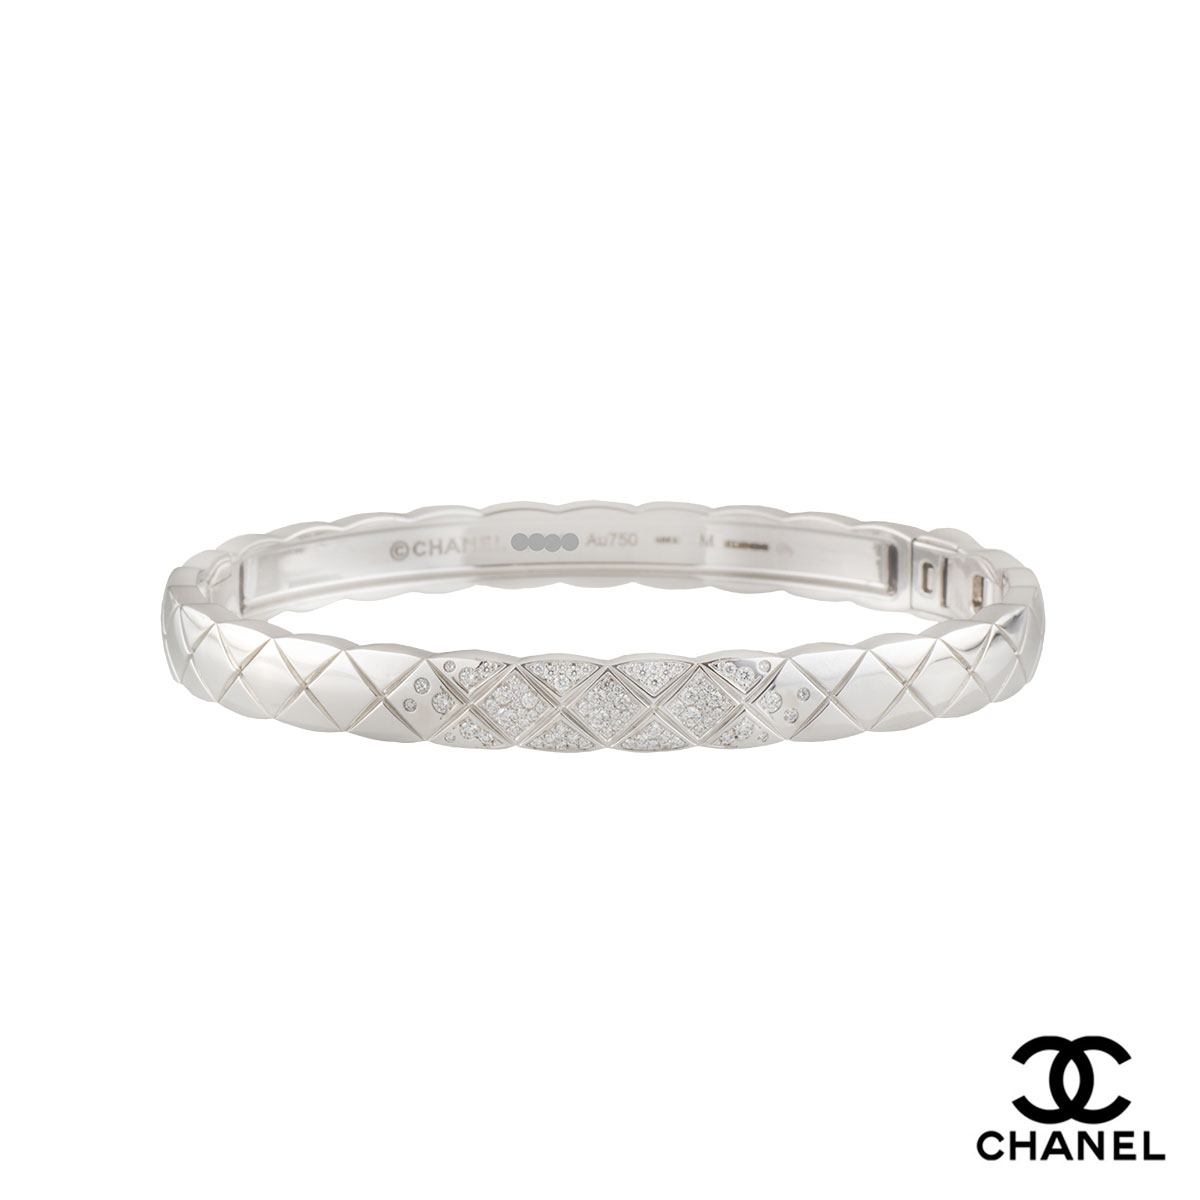 Chanel White Gold Diamond Coco Crush Bracelet J11162